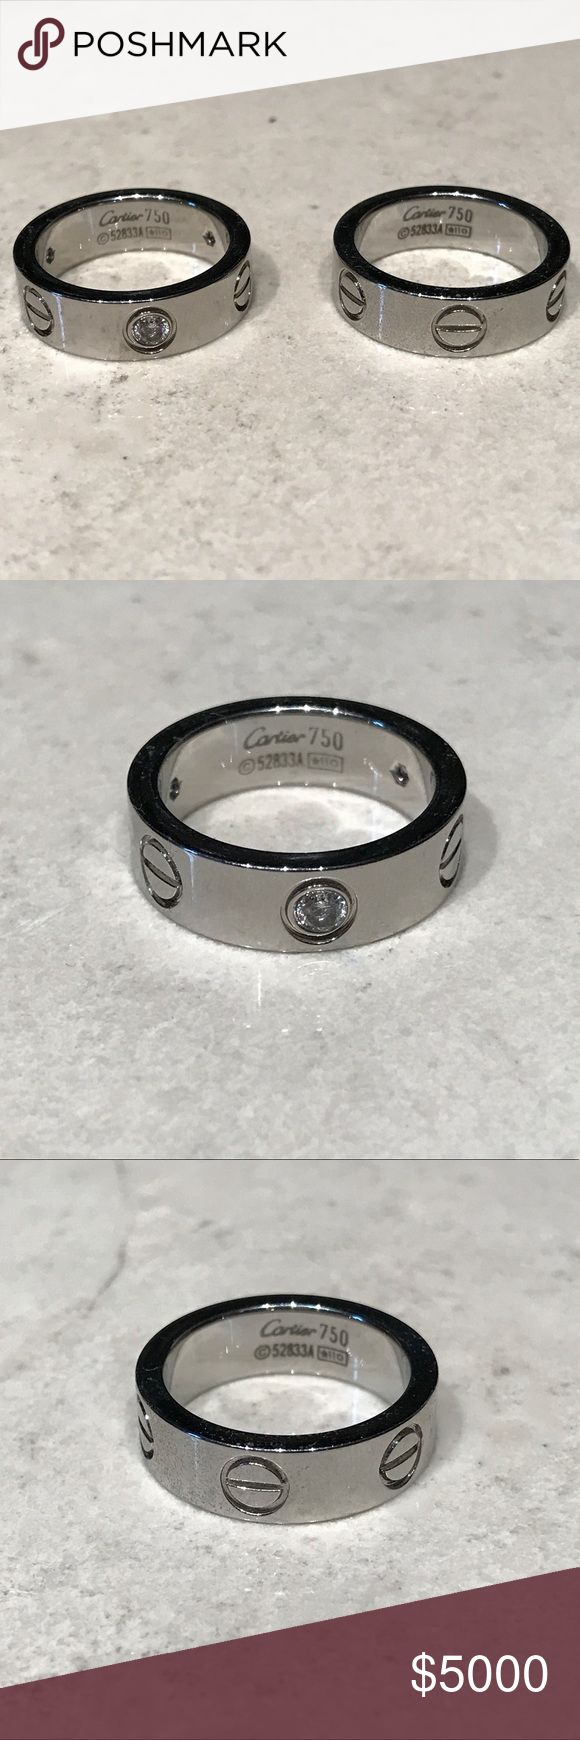 """READ DESCRIPTION BRAND NEW! I currently have these in stock: (1) SILVER W/ STUDS/DIAMONDS (2) PLAIN SILVER. Has Cartier engraving inside the ring as shown in picture and """"Love"""" engraving at the top of the rings. PRICE IS FIRM: $100 RING WITH STUDS/DIAMONDS - $75 PLAIN RING. Both size 7. THESE ARE NOT A U T H E N T I C. none Jewelry Rings"""